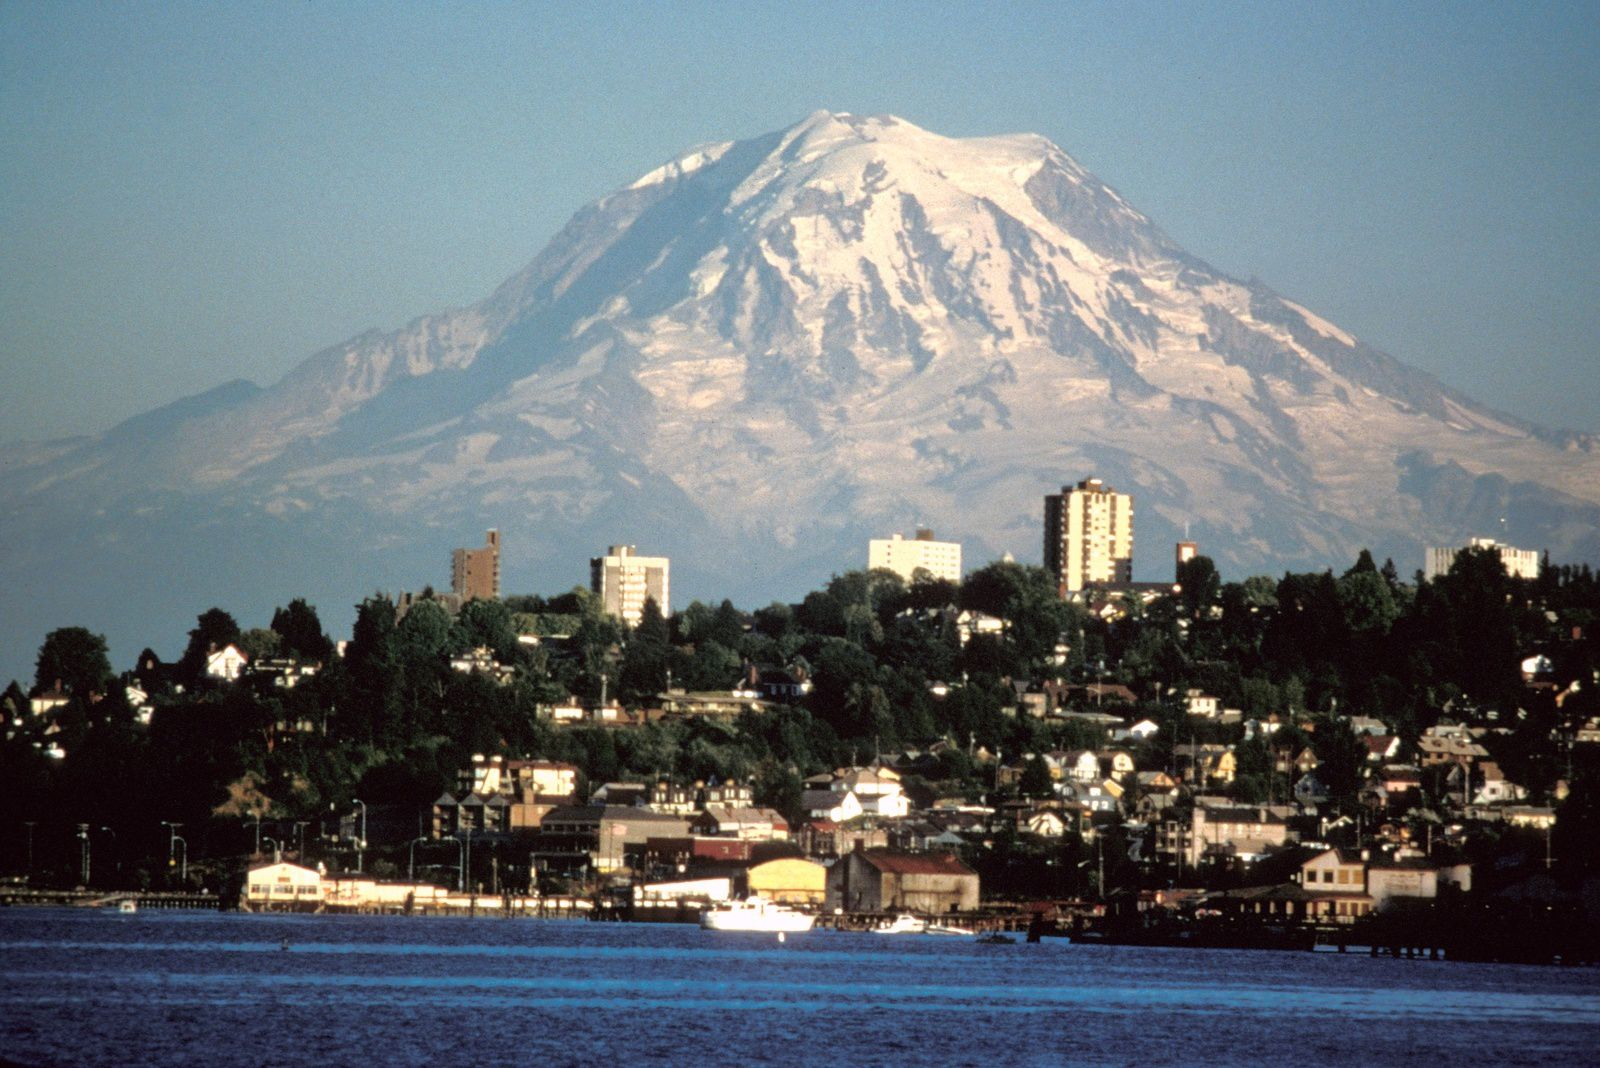 Mt Rainier overlooking the city of Tacoma